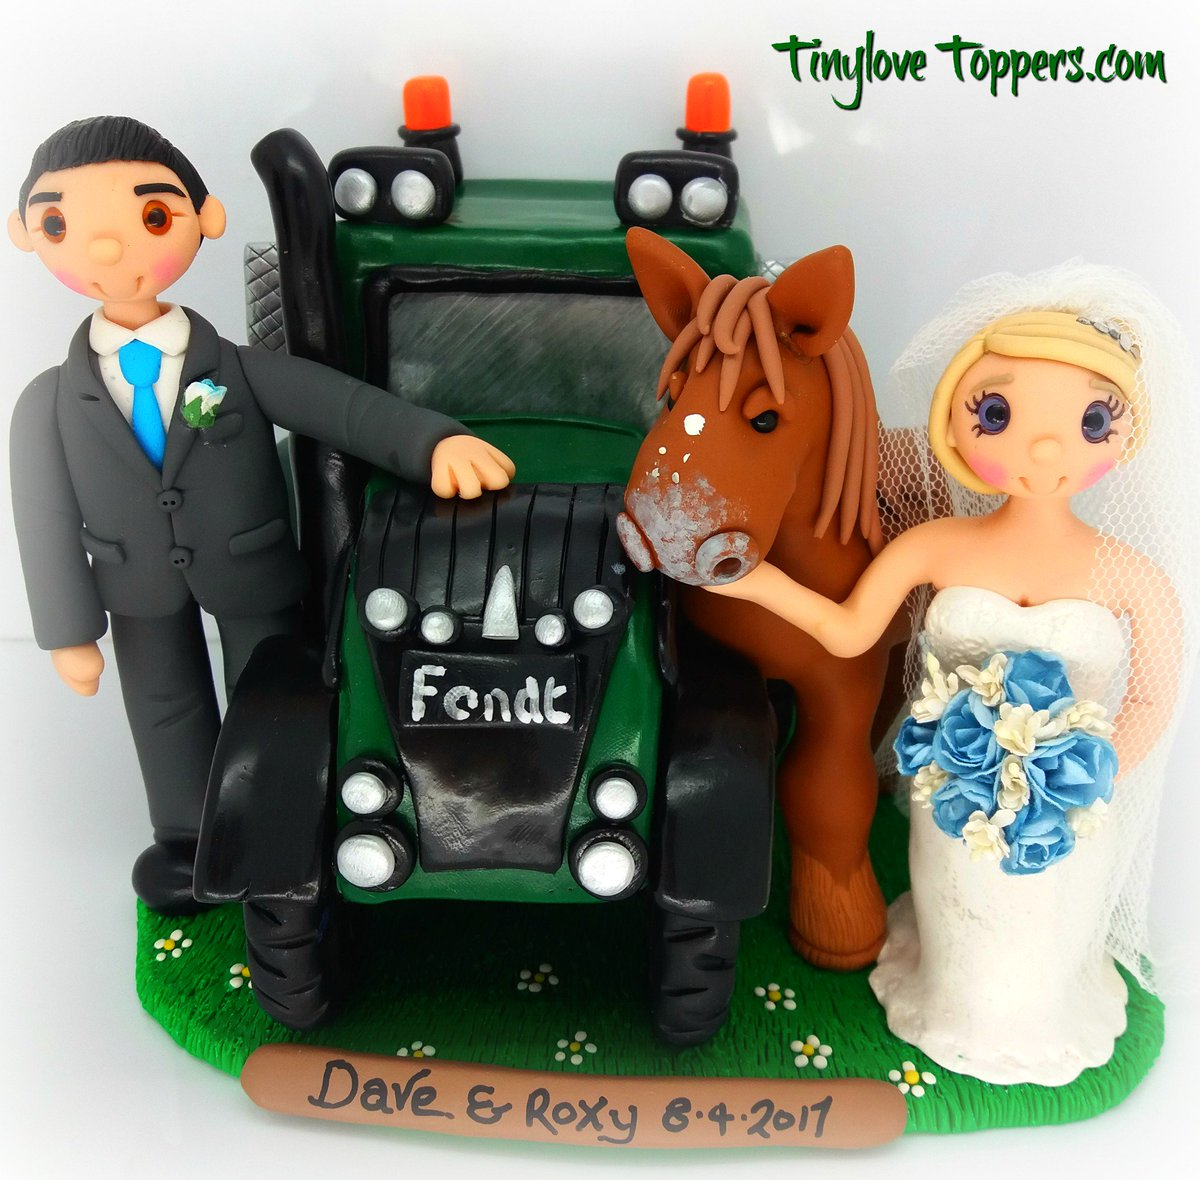 Wedding Cake Toppers (@Tinylovetoppers) | Twitter